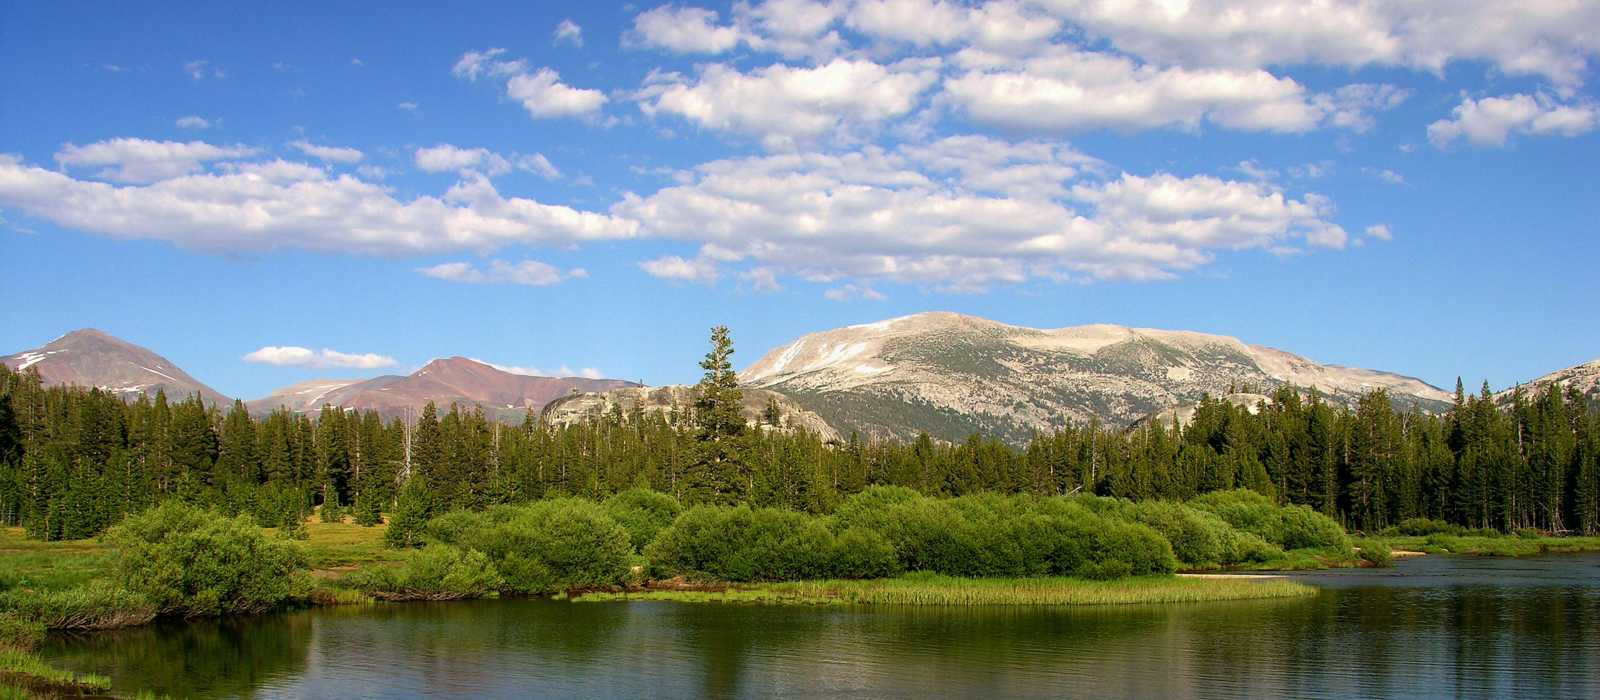 Tuolumne Meadows im Yosemite Nationalpark